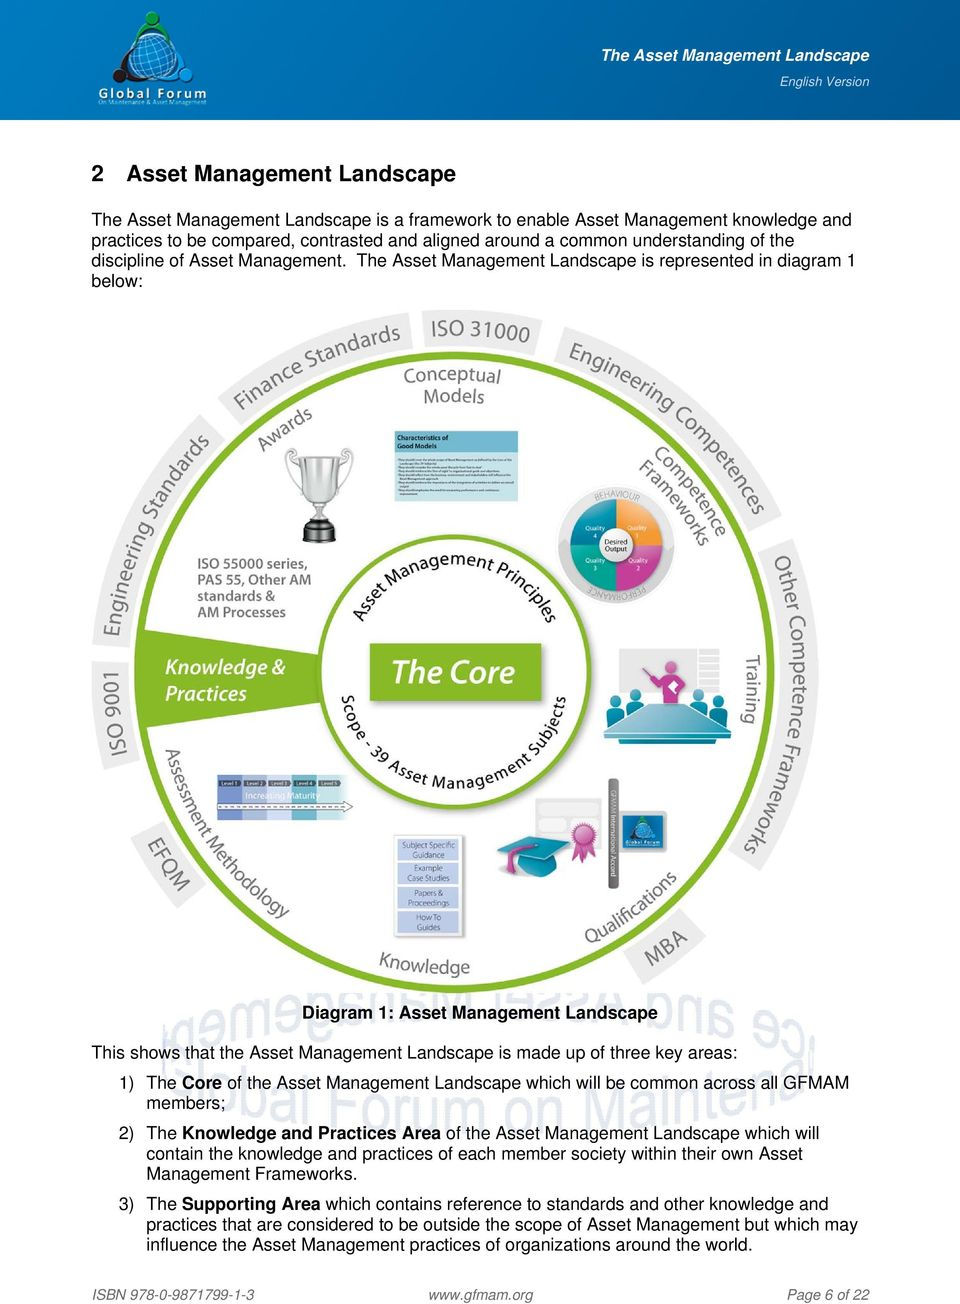 The Asset Management Landscape is represented in diagram 1 below: Diagram 1: Asset Management Landscape This shows that the Asset Management Landscape is made up of three key areas: 1) The Core of